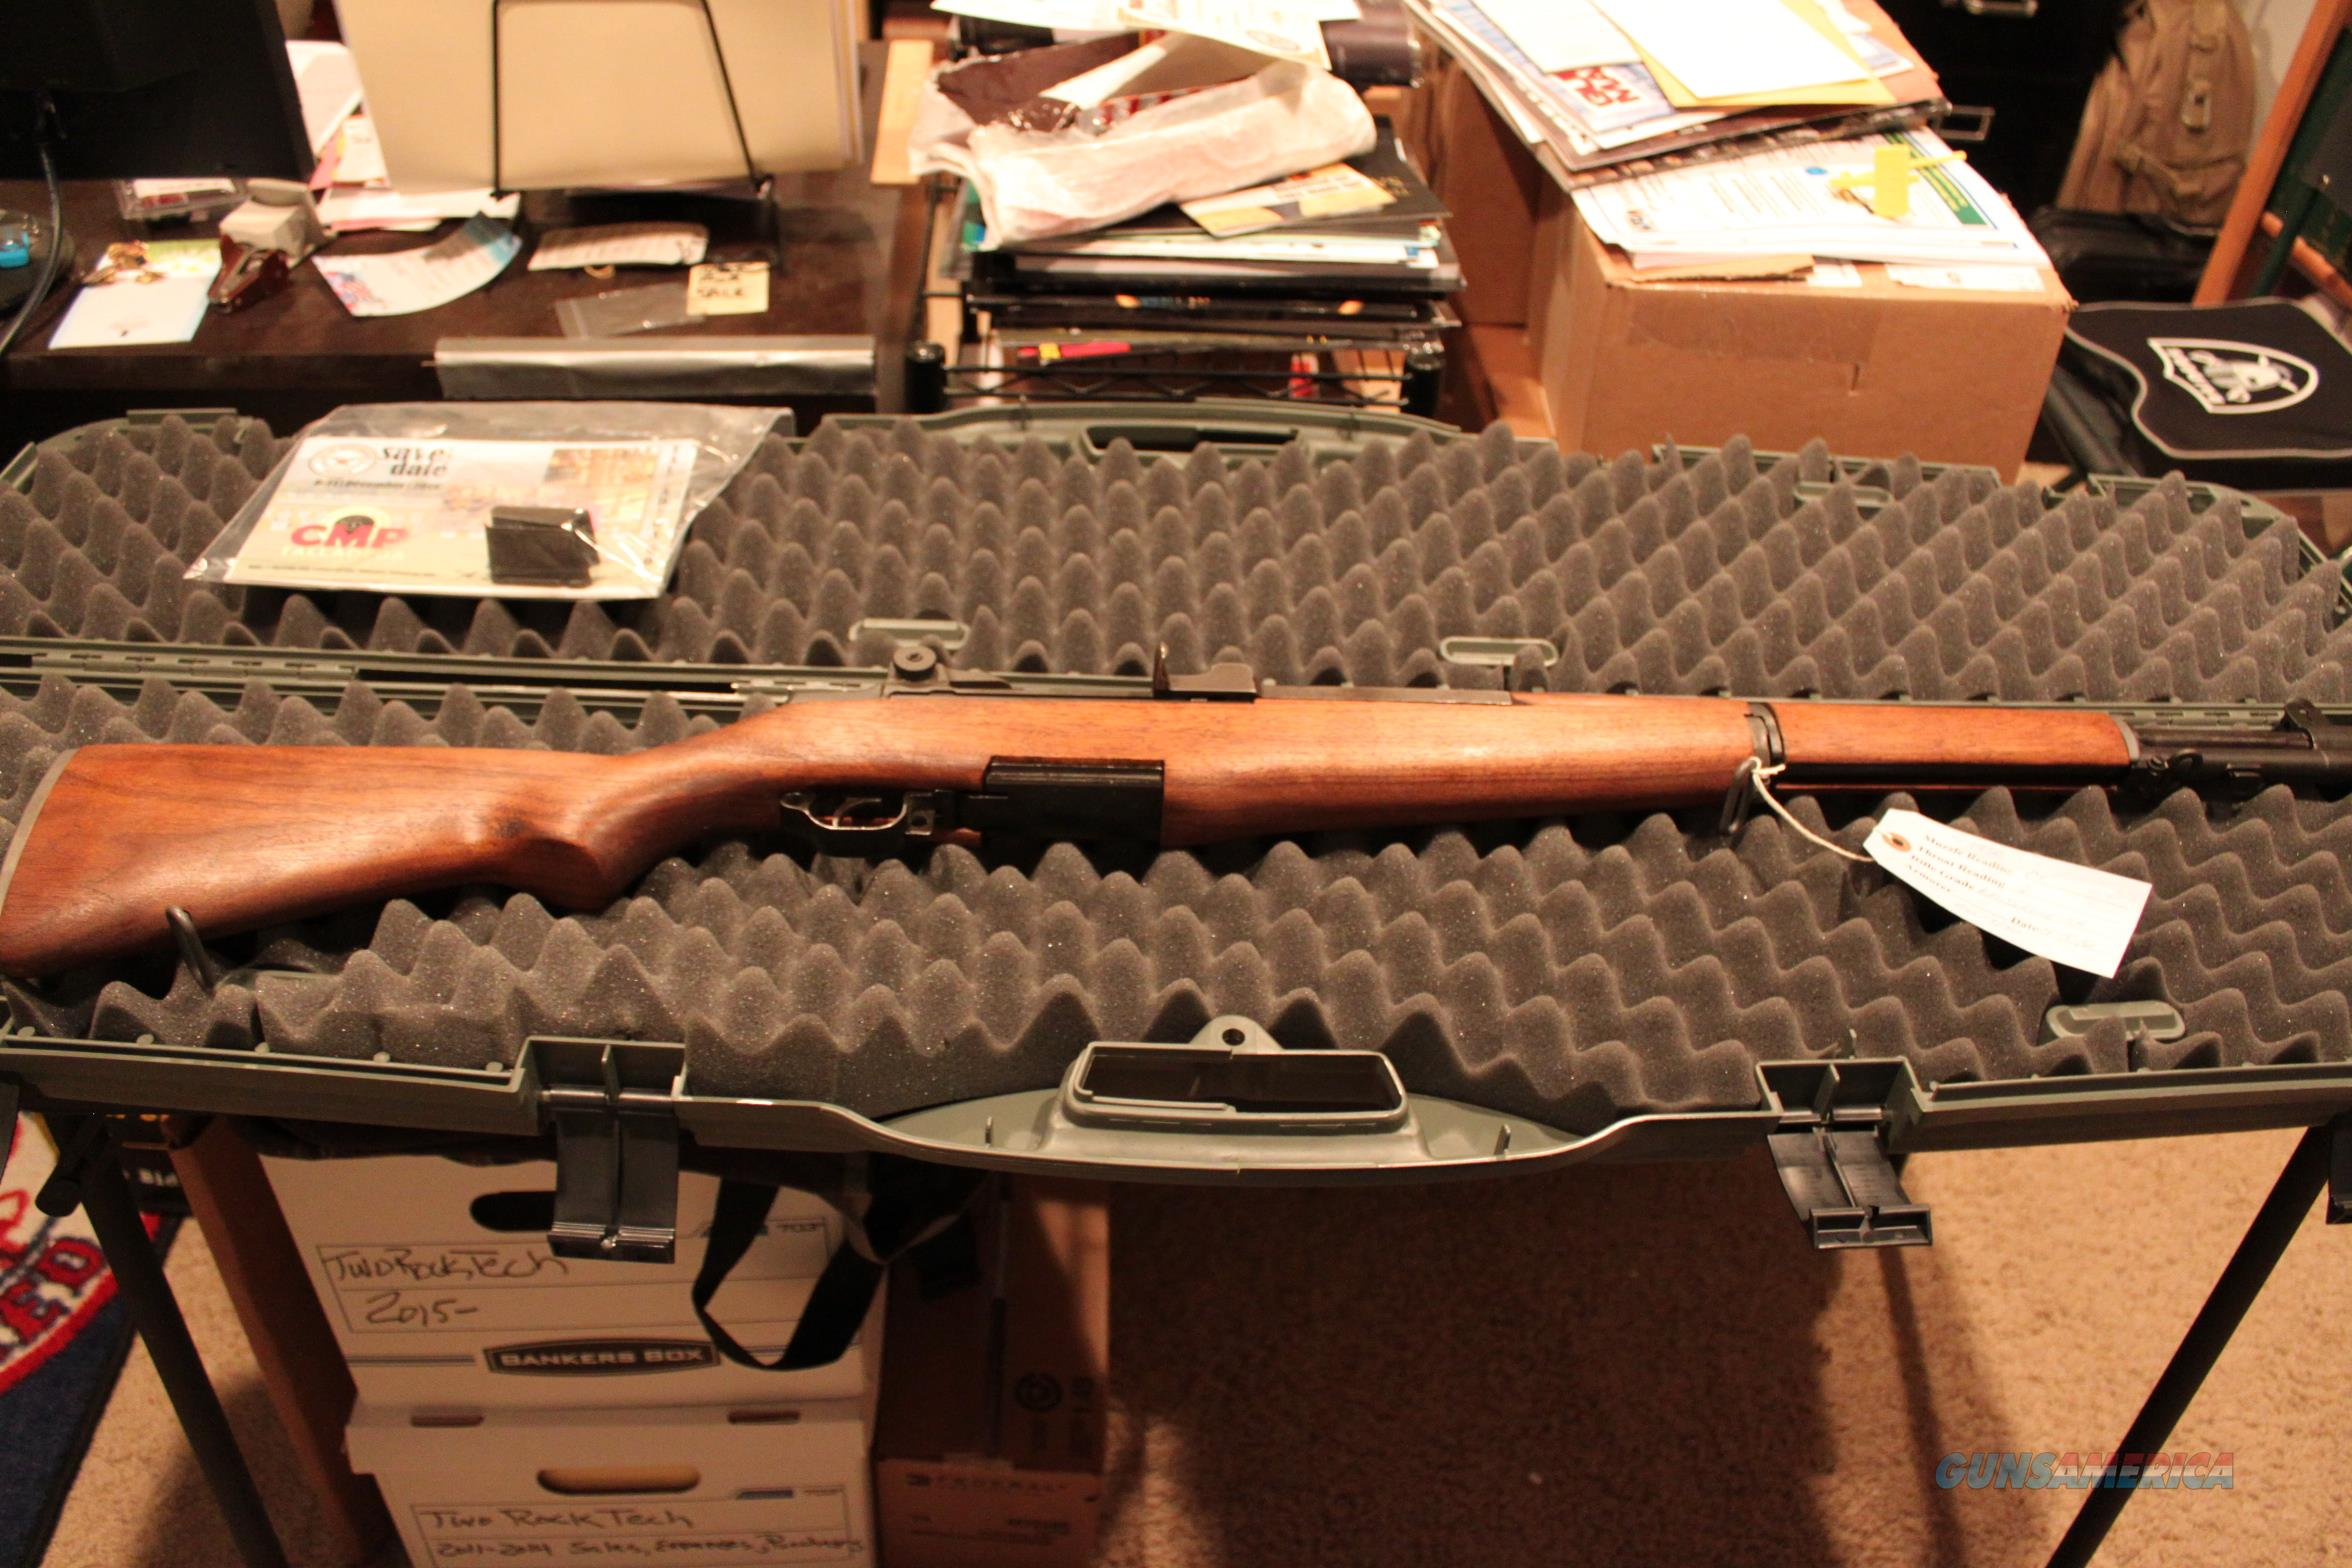 Springfield Armory M1 Garand In Excellent Condition (CMP)  Guns > Rifles > Springfield Armory Rifles > M1 Garand